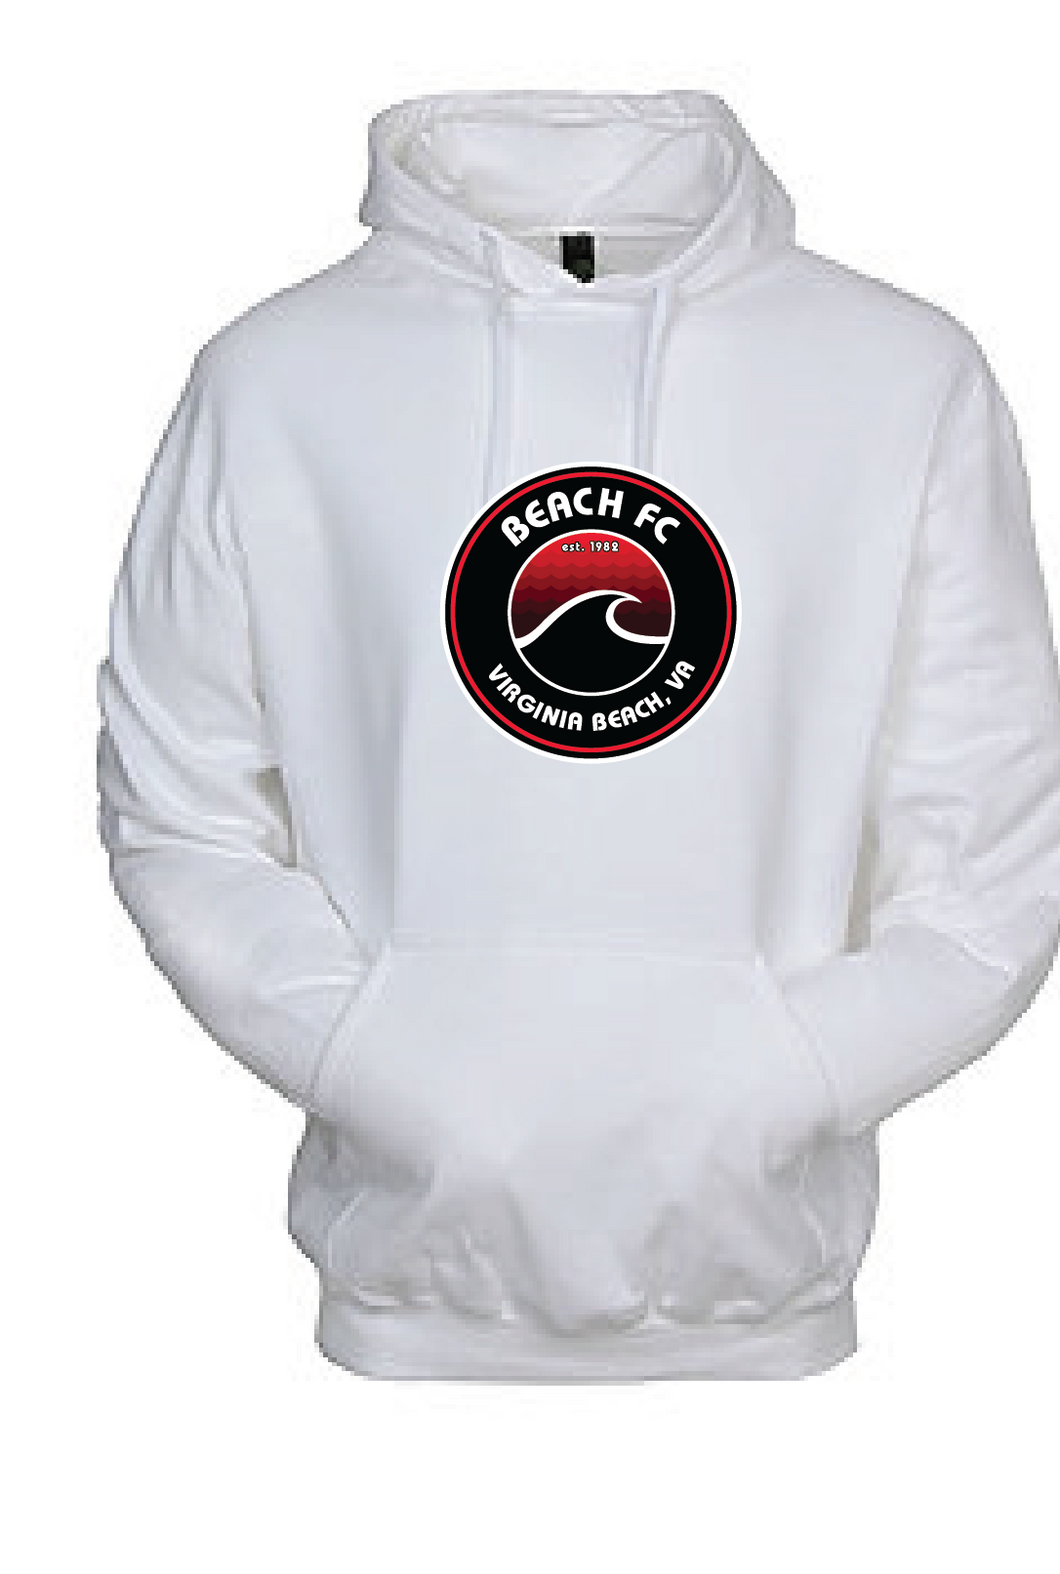 Performance Pullover Hoodie / White / Beach FC